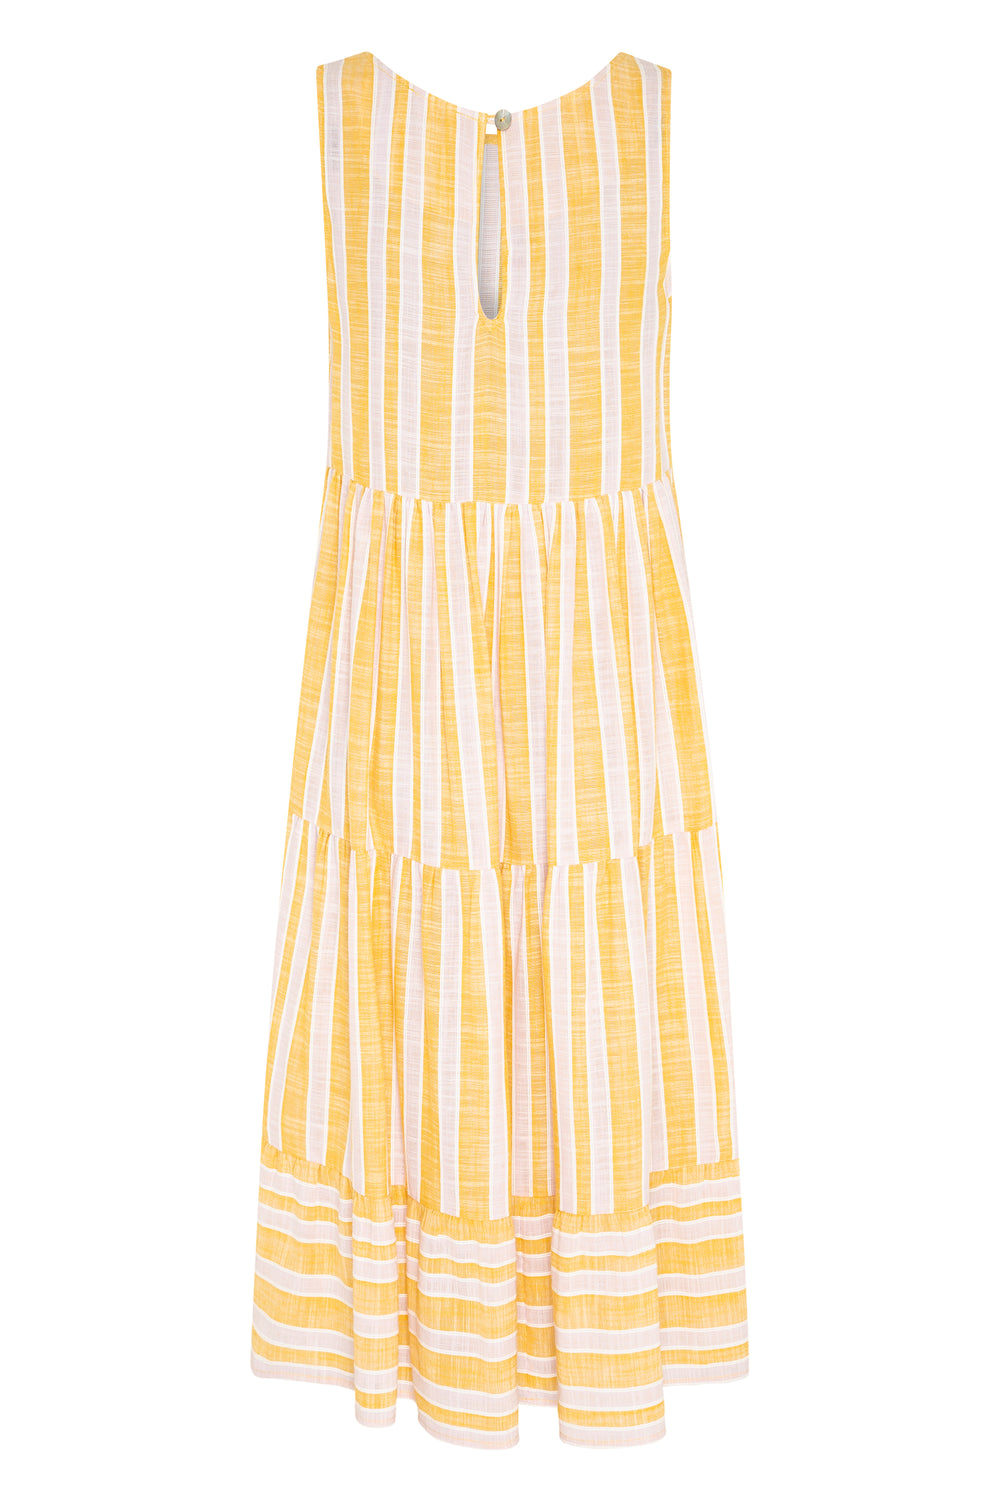 Olivia Midi Dress In Mustard Stripe